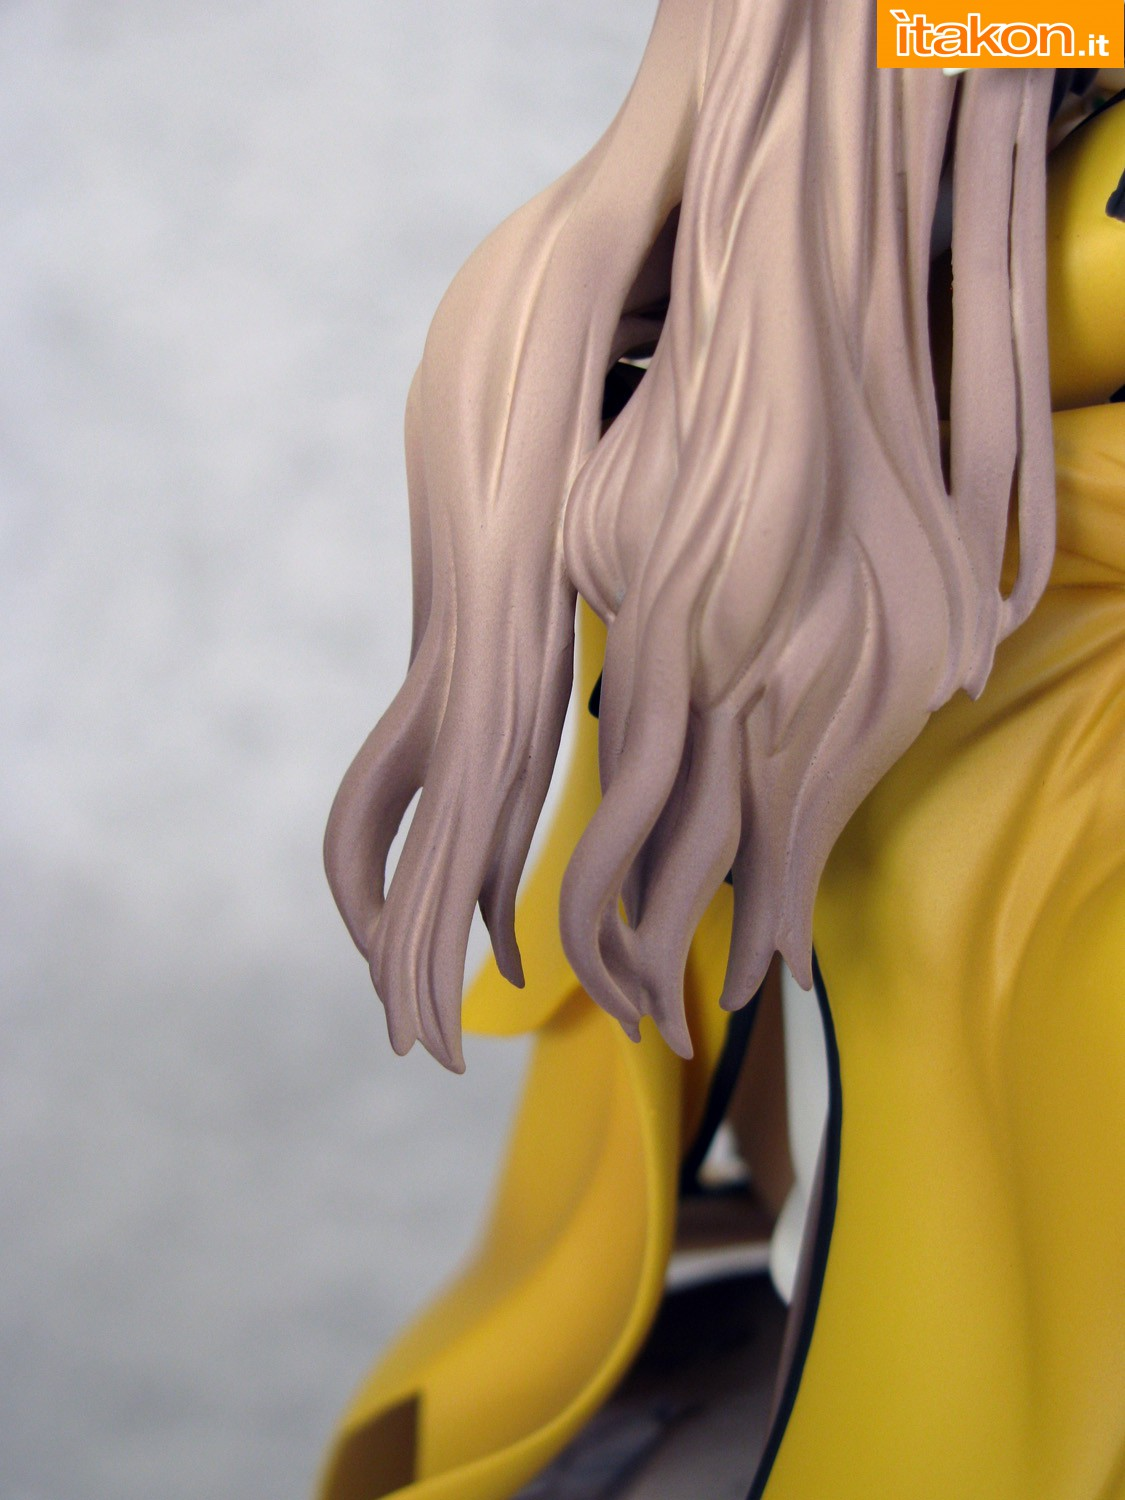 Link a 042 Kureha Shining Wind Orchid Seed Recensione